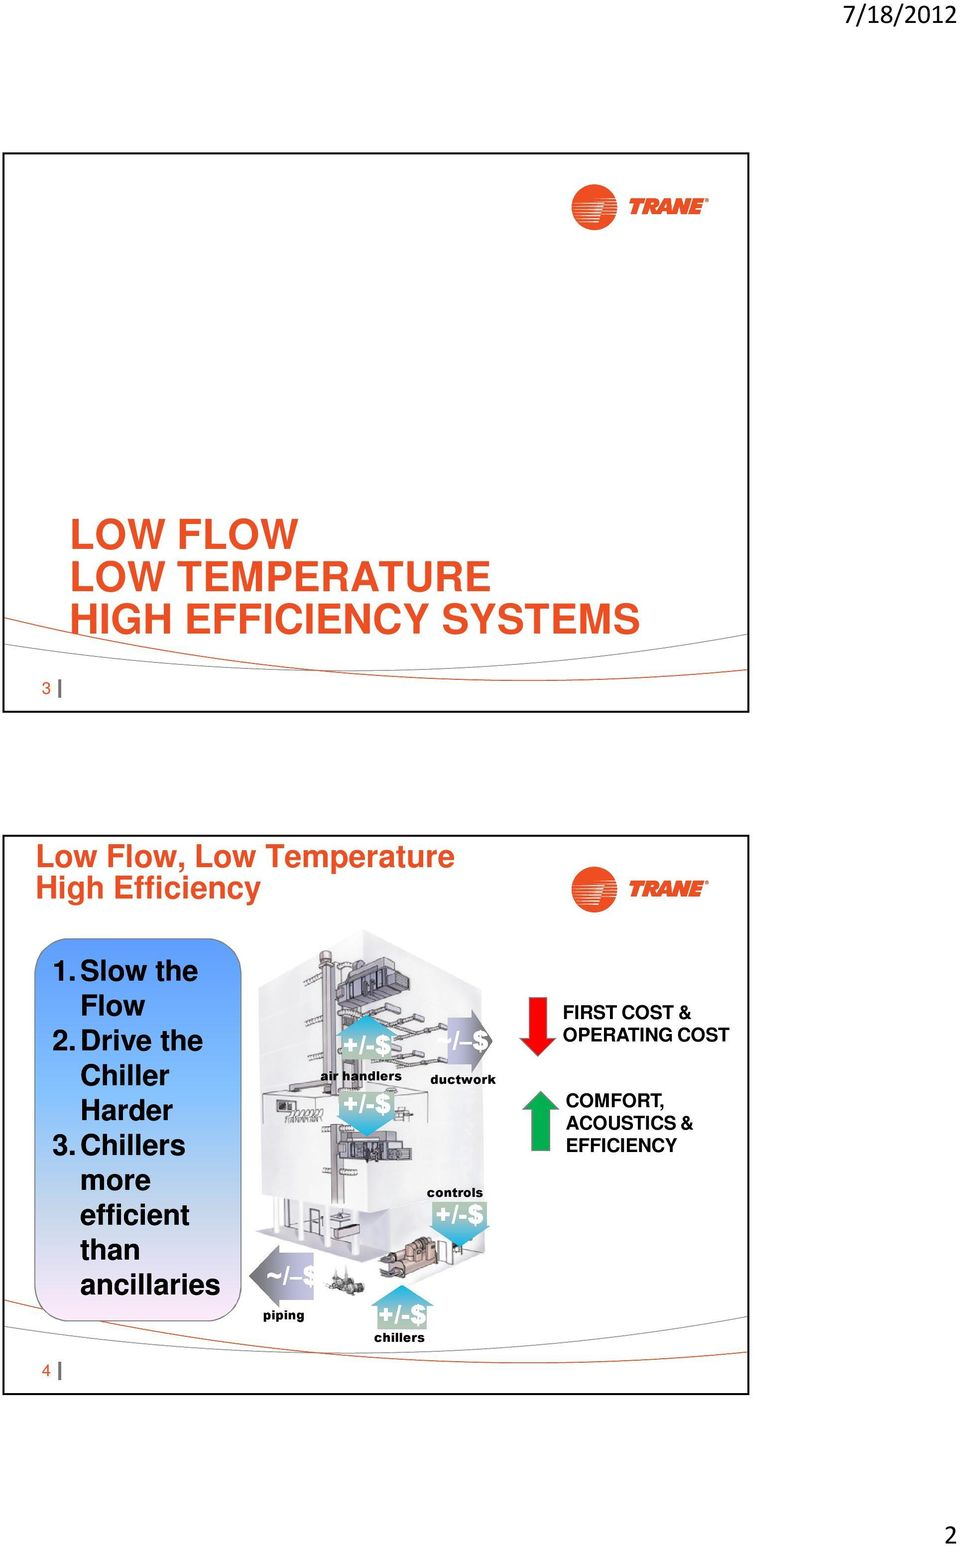 Chillers more efficient than ancillaries ~/ $ piping +/-$ air handlers +/-$